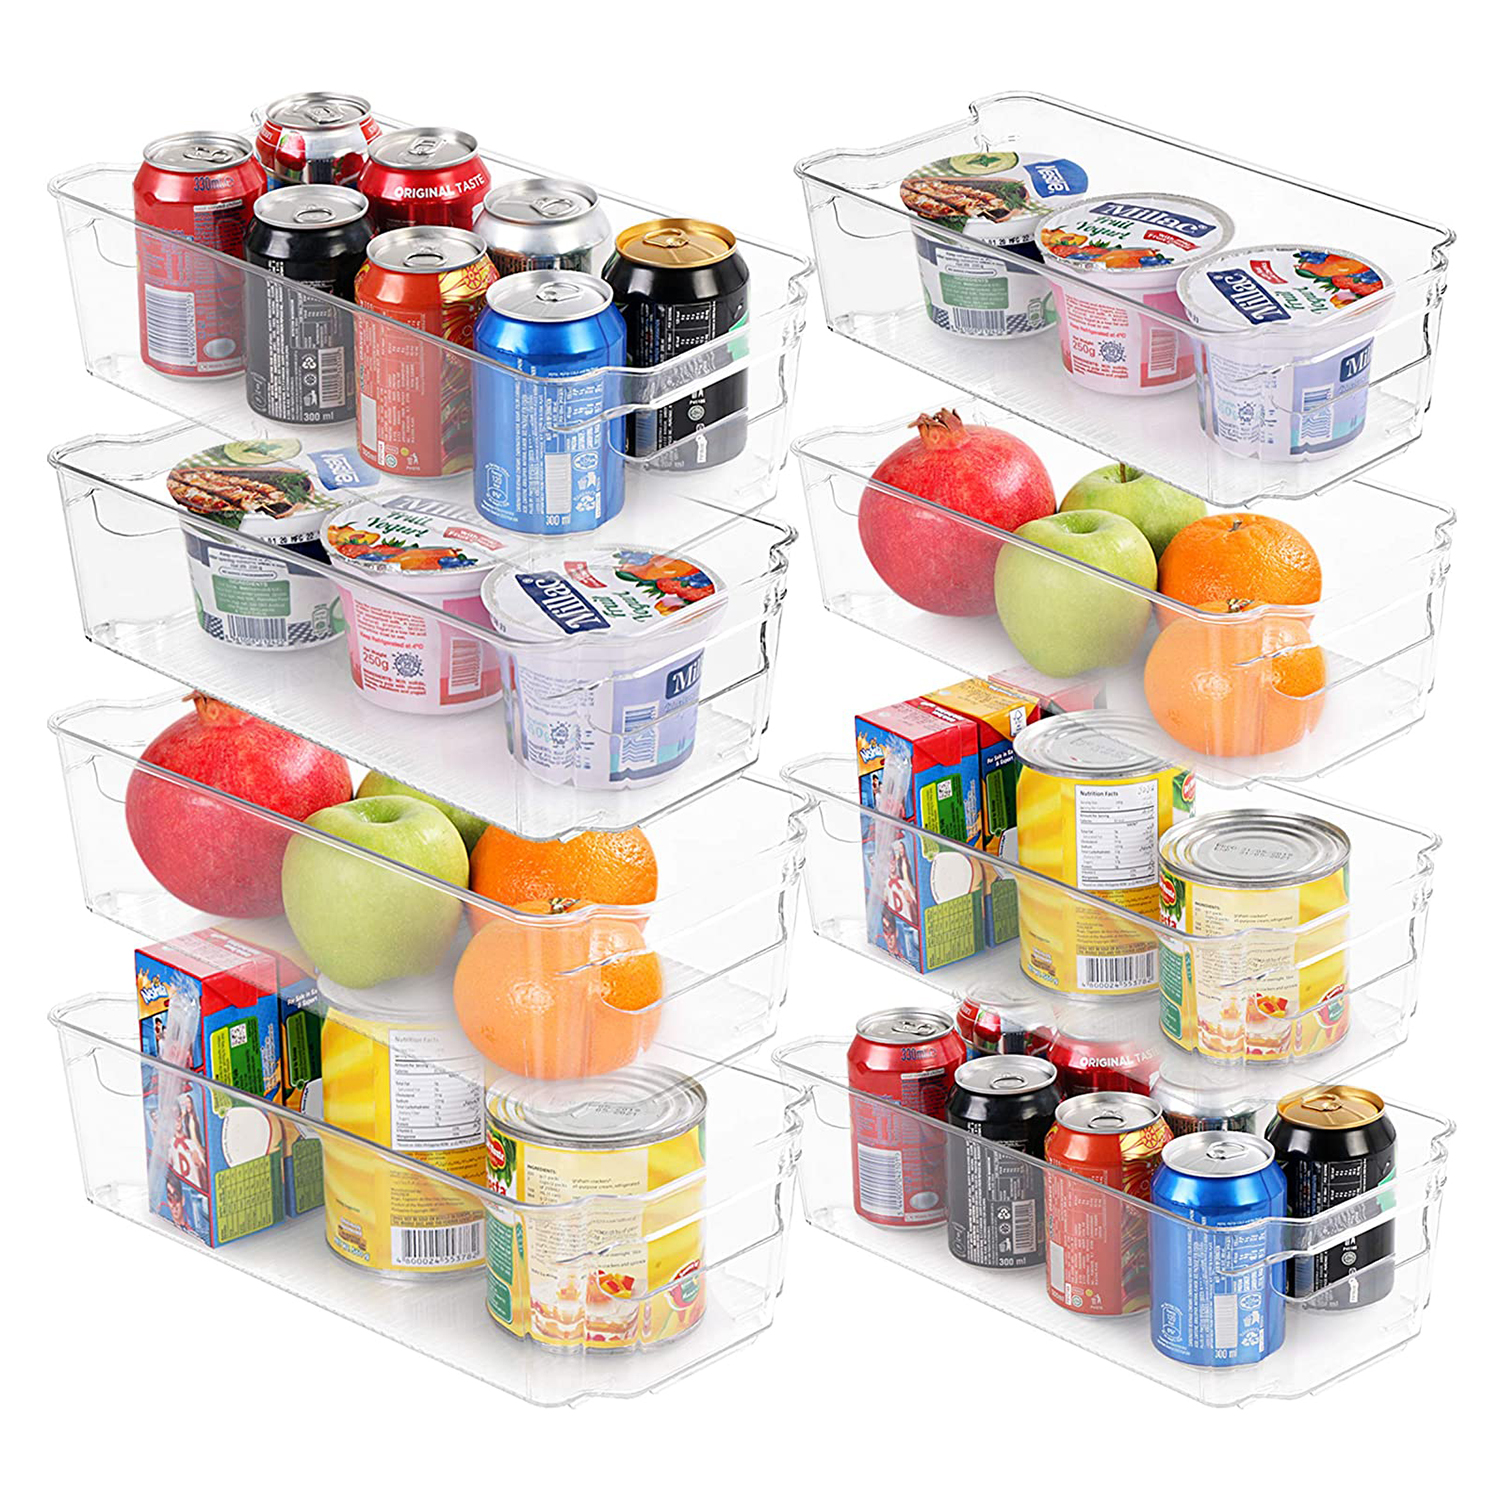 Set of 8 Pantry Organizers-Includes 8 Organizers